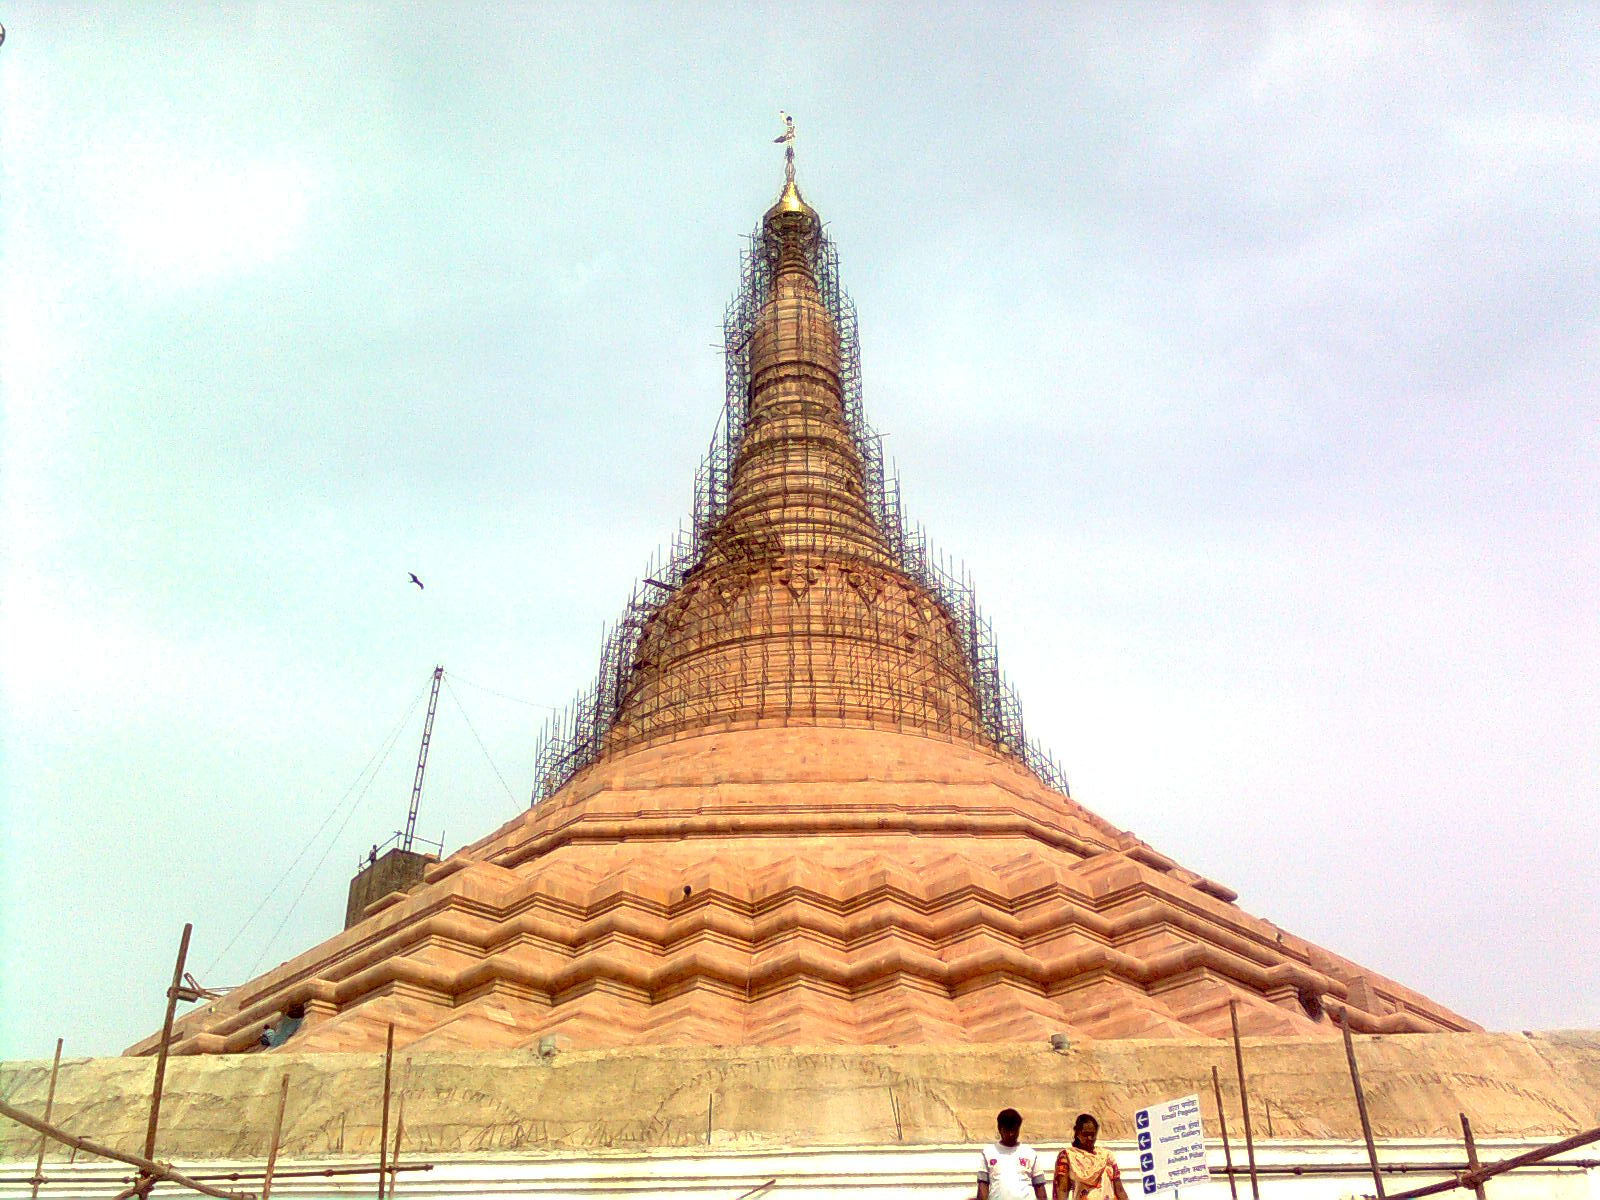 Global Vipassana Pagoda - the largest stone dome in the world (Monument) - similarity image